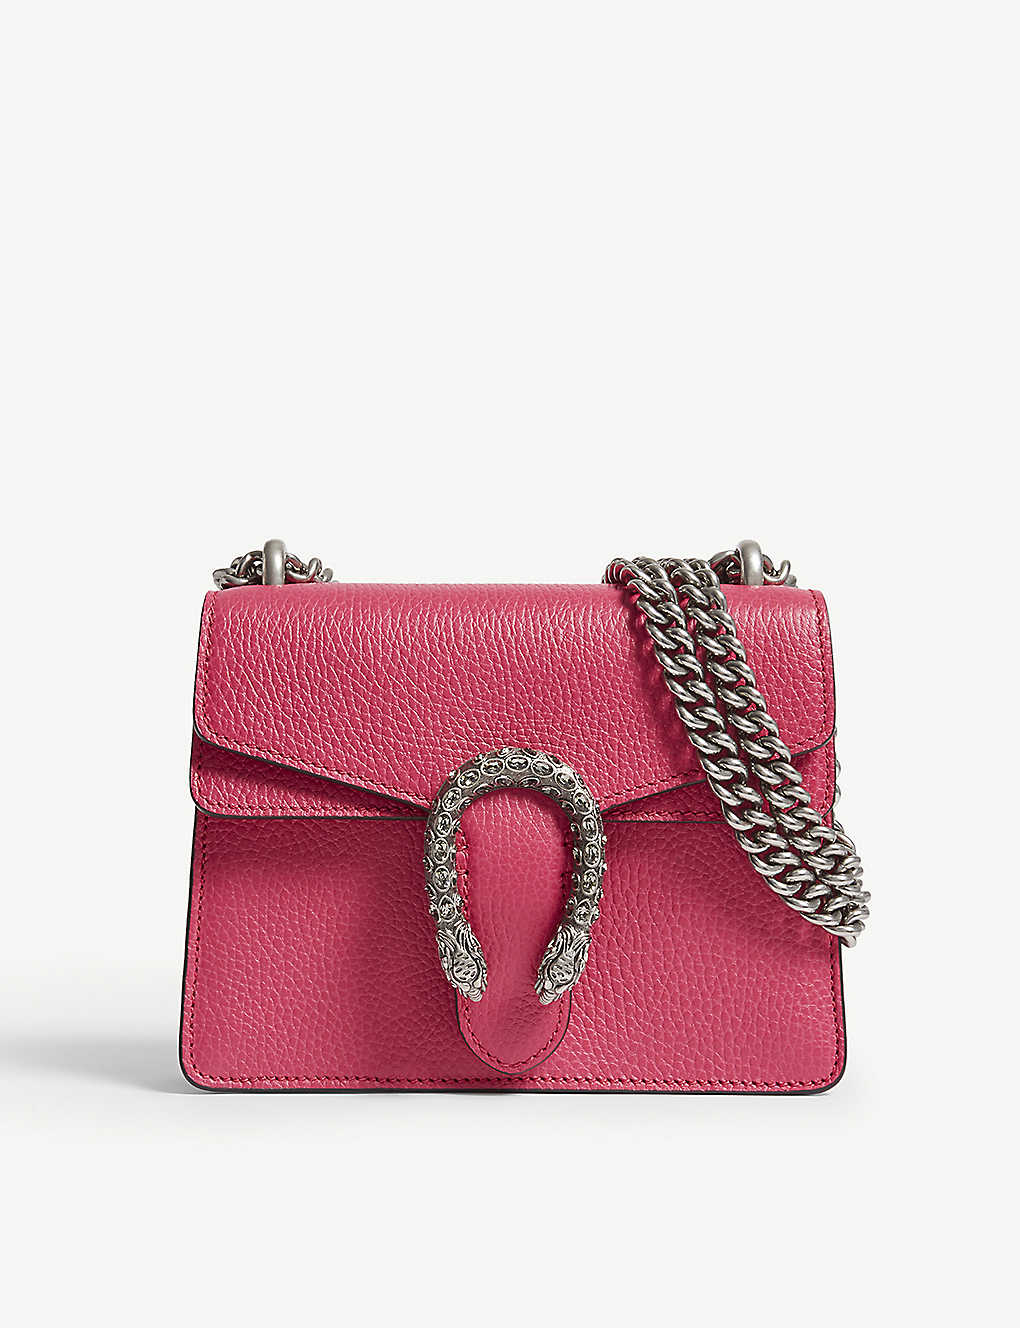 ac3592c921f0 GUCCI - Dionysus extra-small leather shoulder bag | Selfridges.com